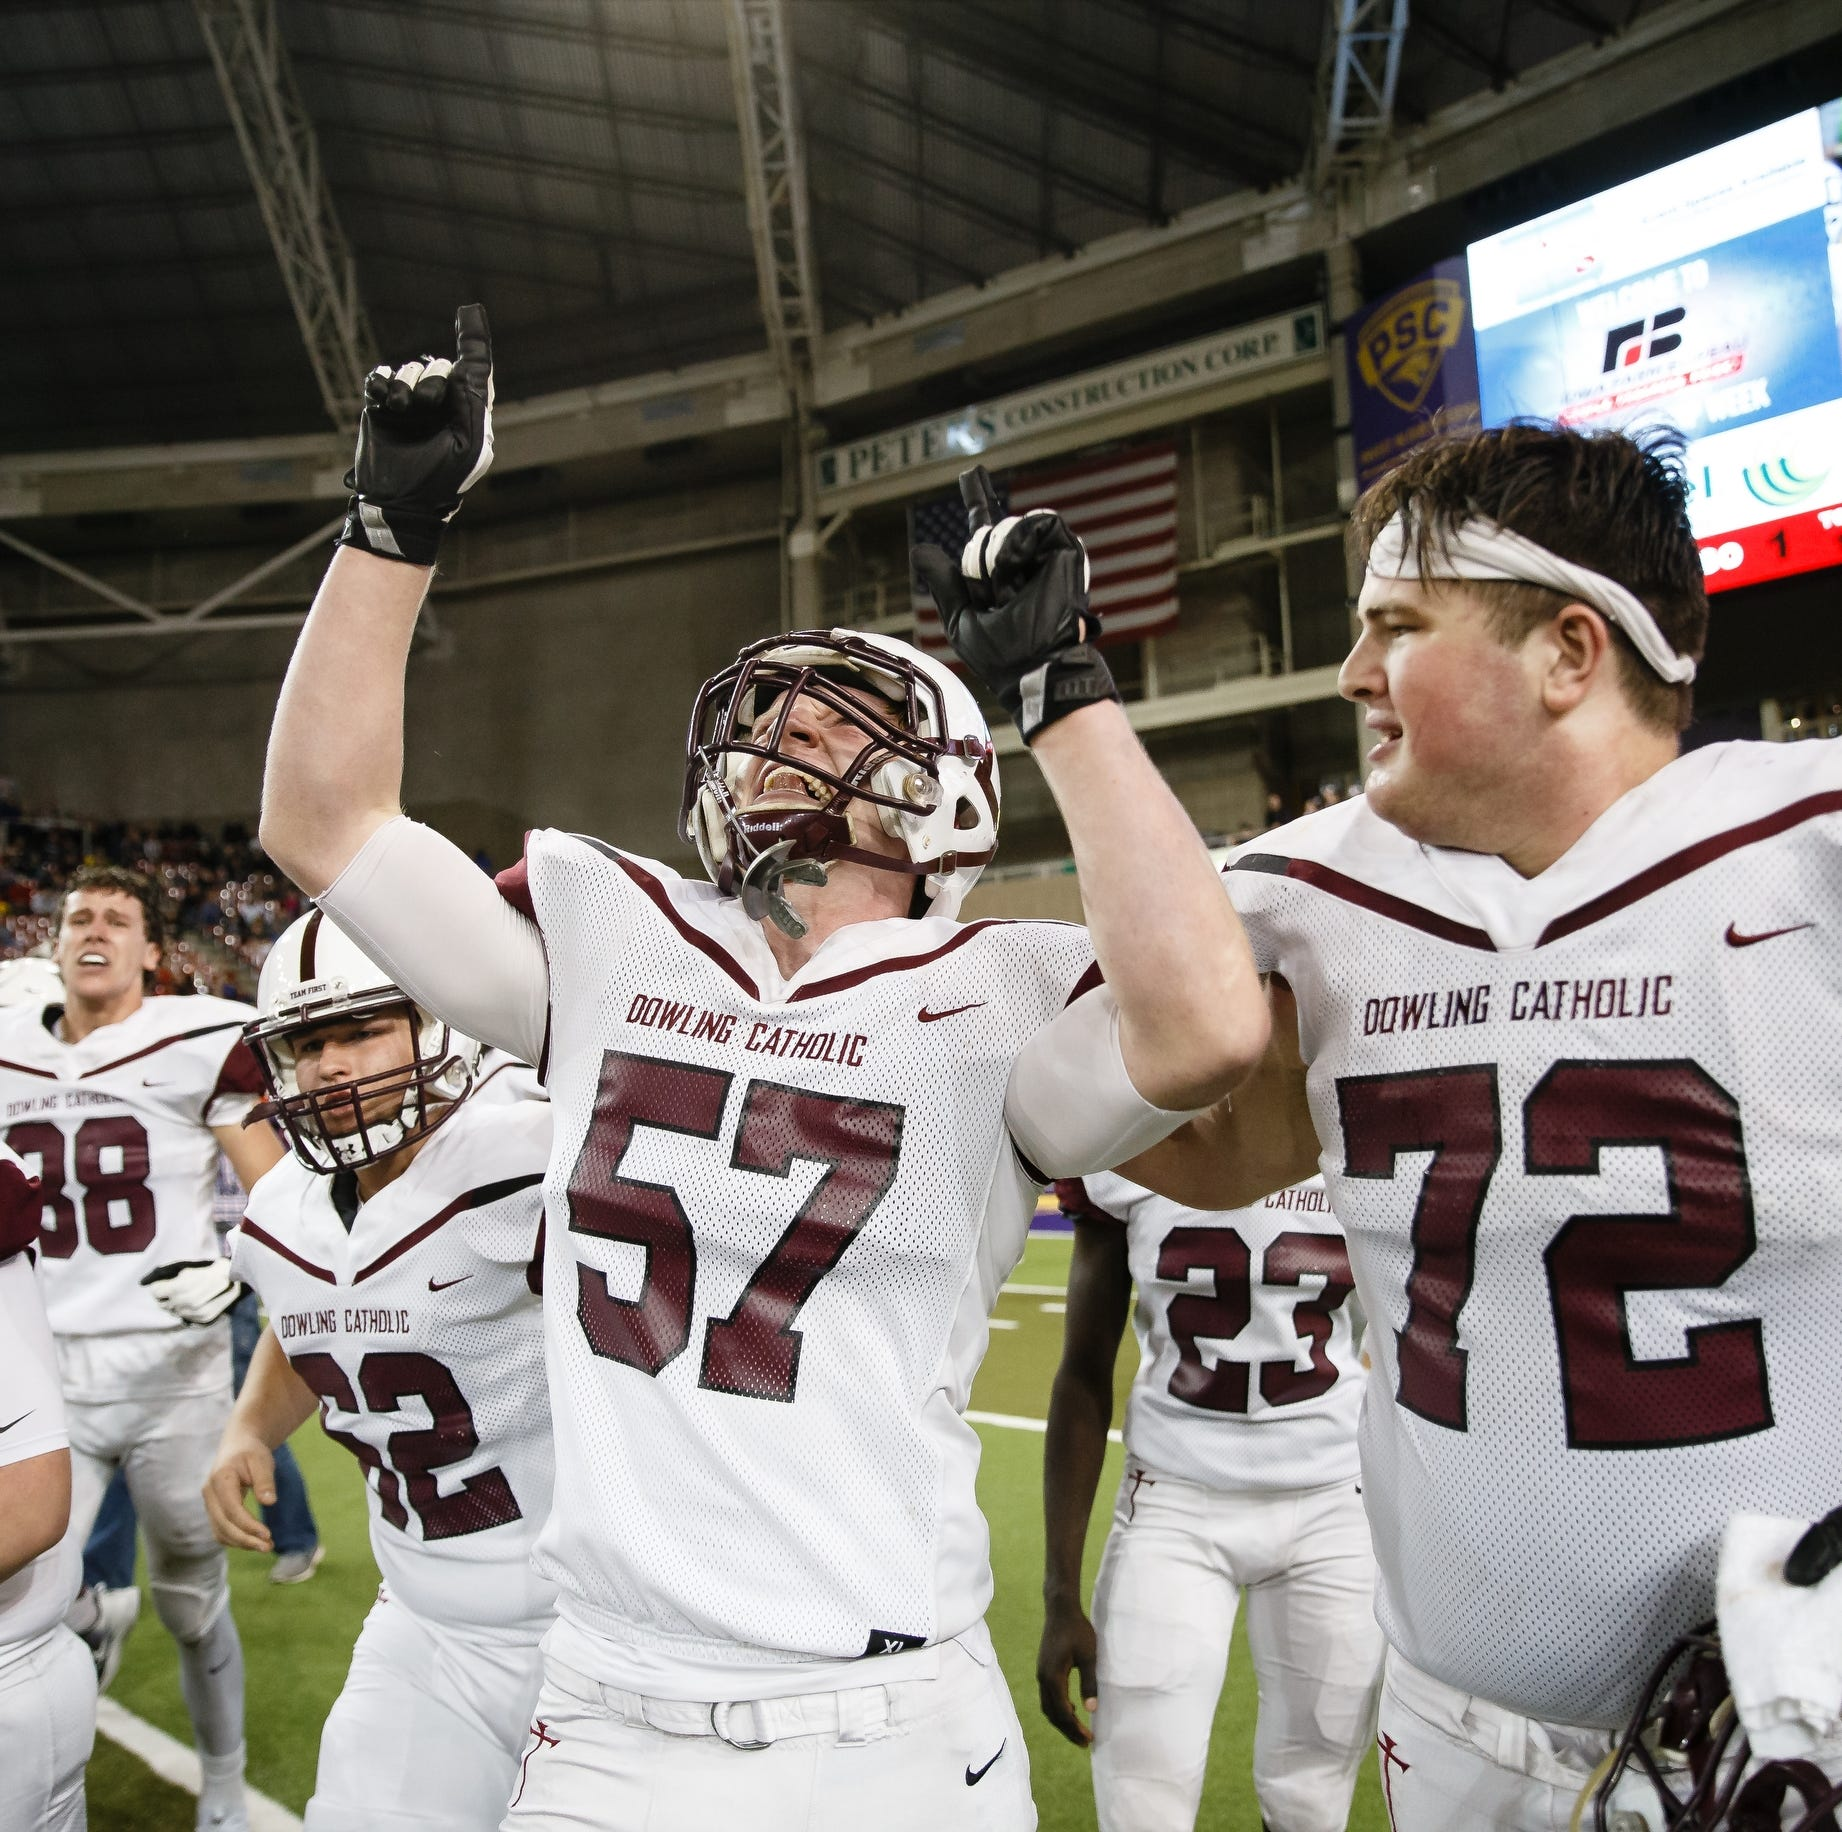 Make your predictions for all of the 2018 Iowa high school state championship football games